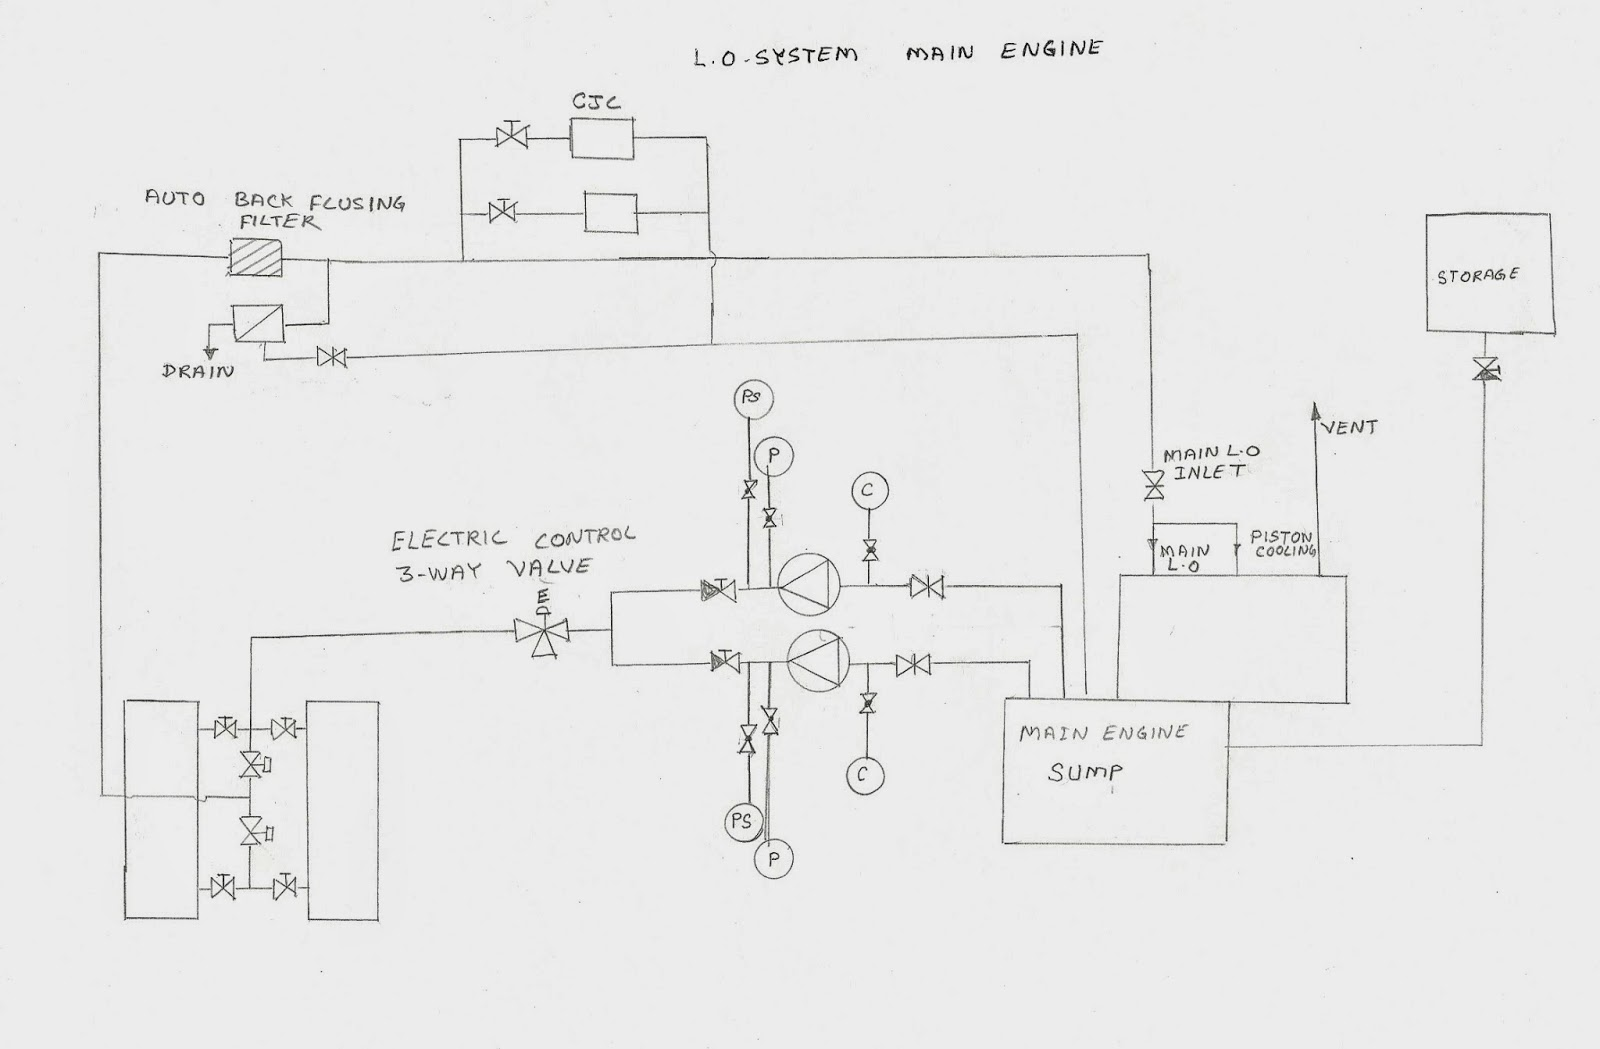 small resolution of lube oil system main engine